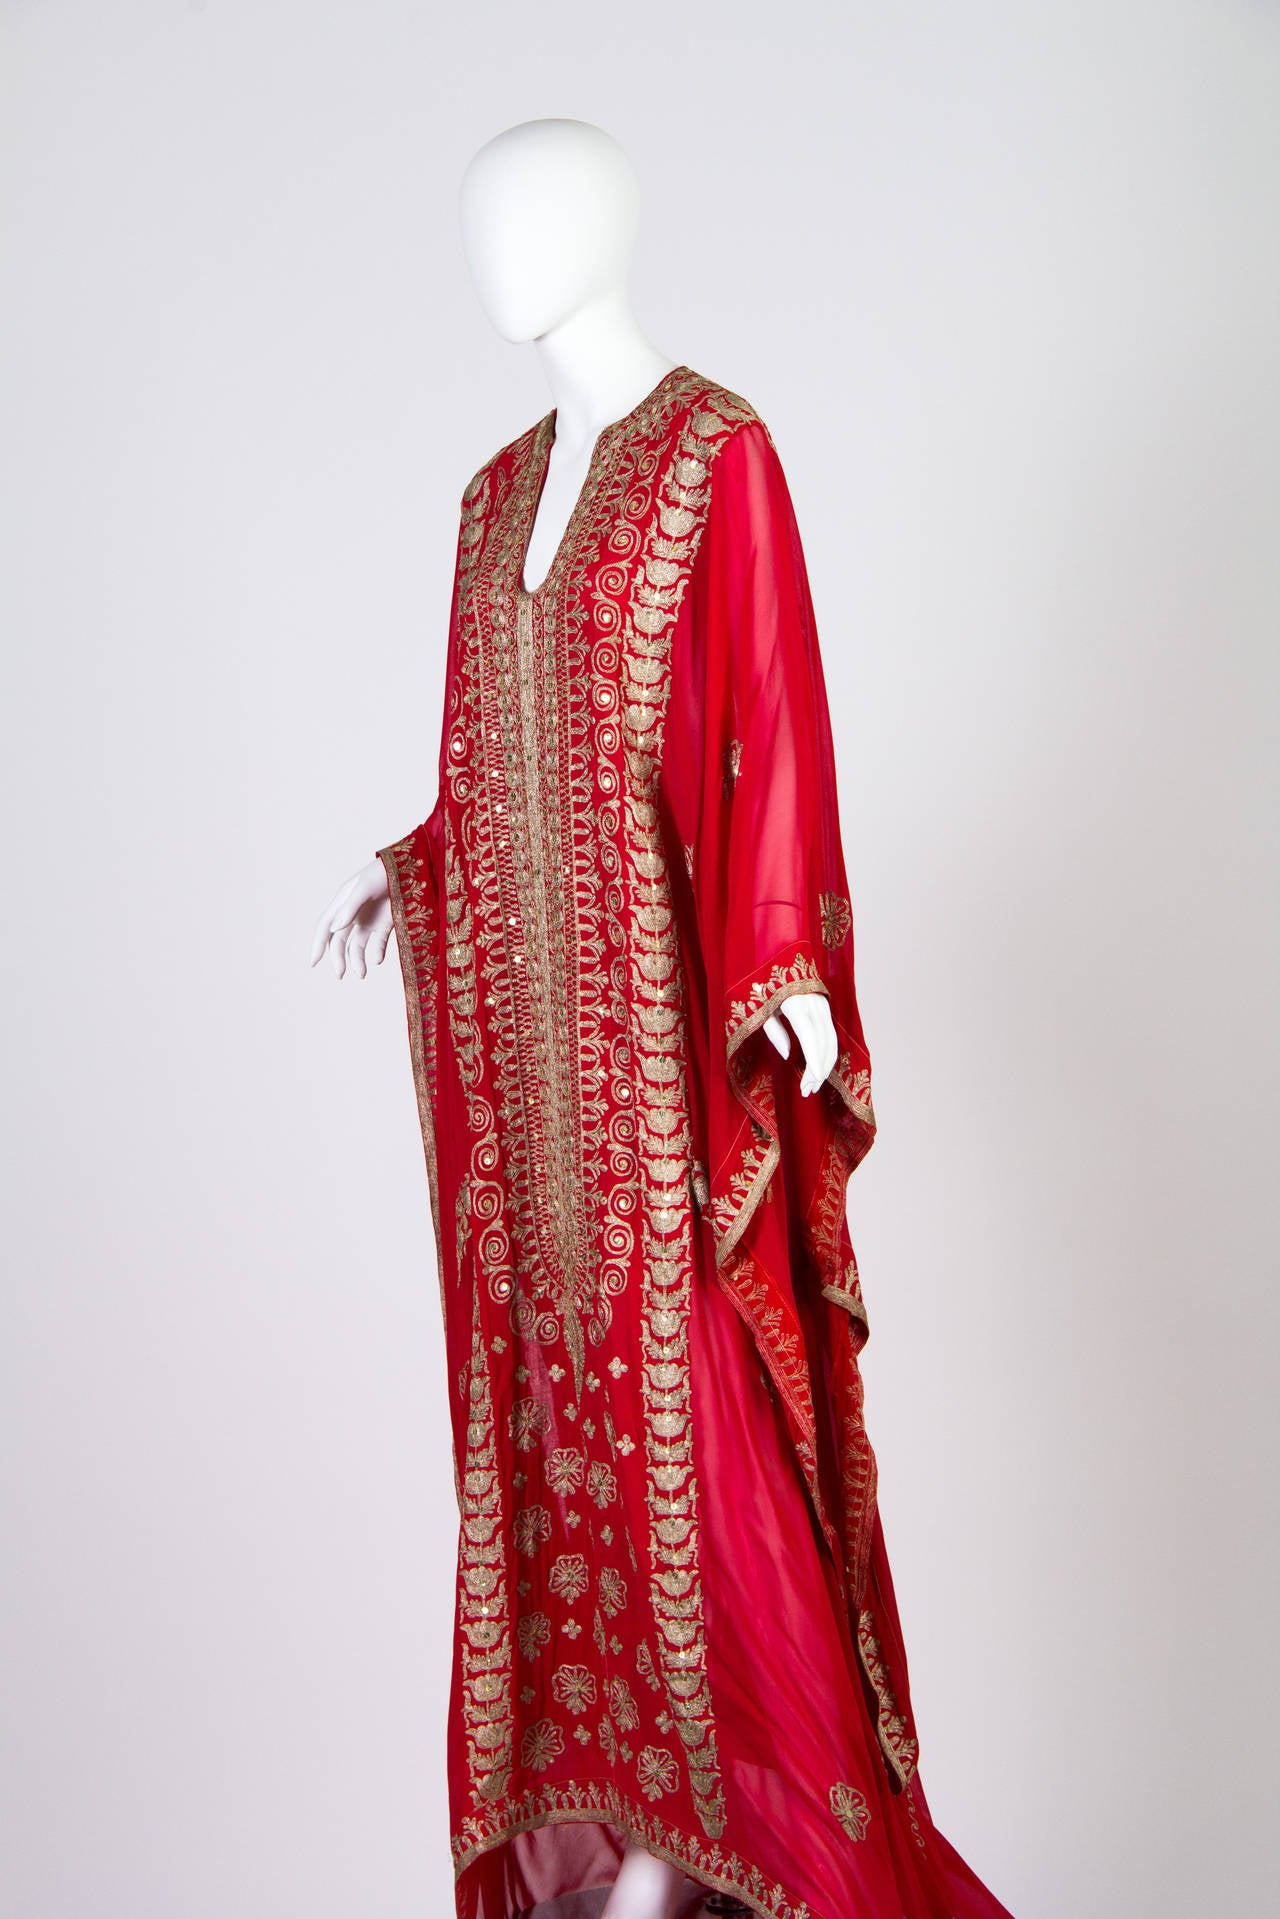 This is an incredibly decadent vintage piece. This opulent red vintage kaftan is made up of gauzy fabric that drapes and flows gloriously around your body and down to the earth beneath you. It trains however there are two internal snaps to shorten